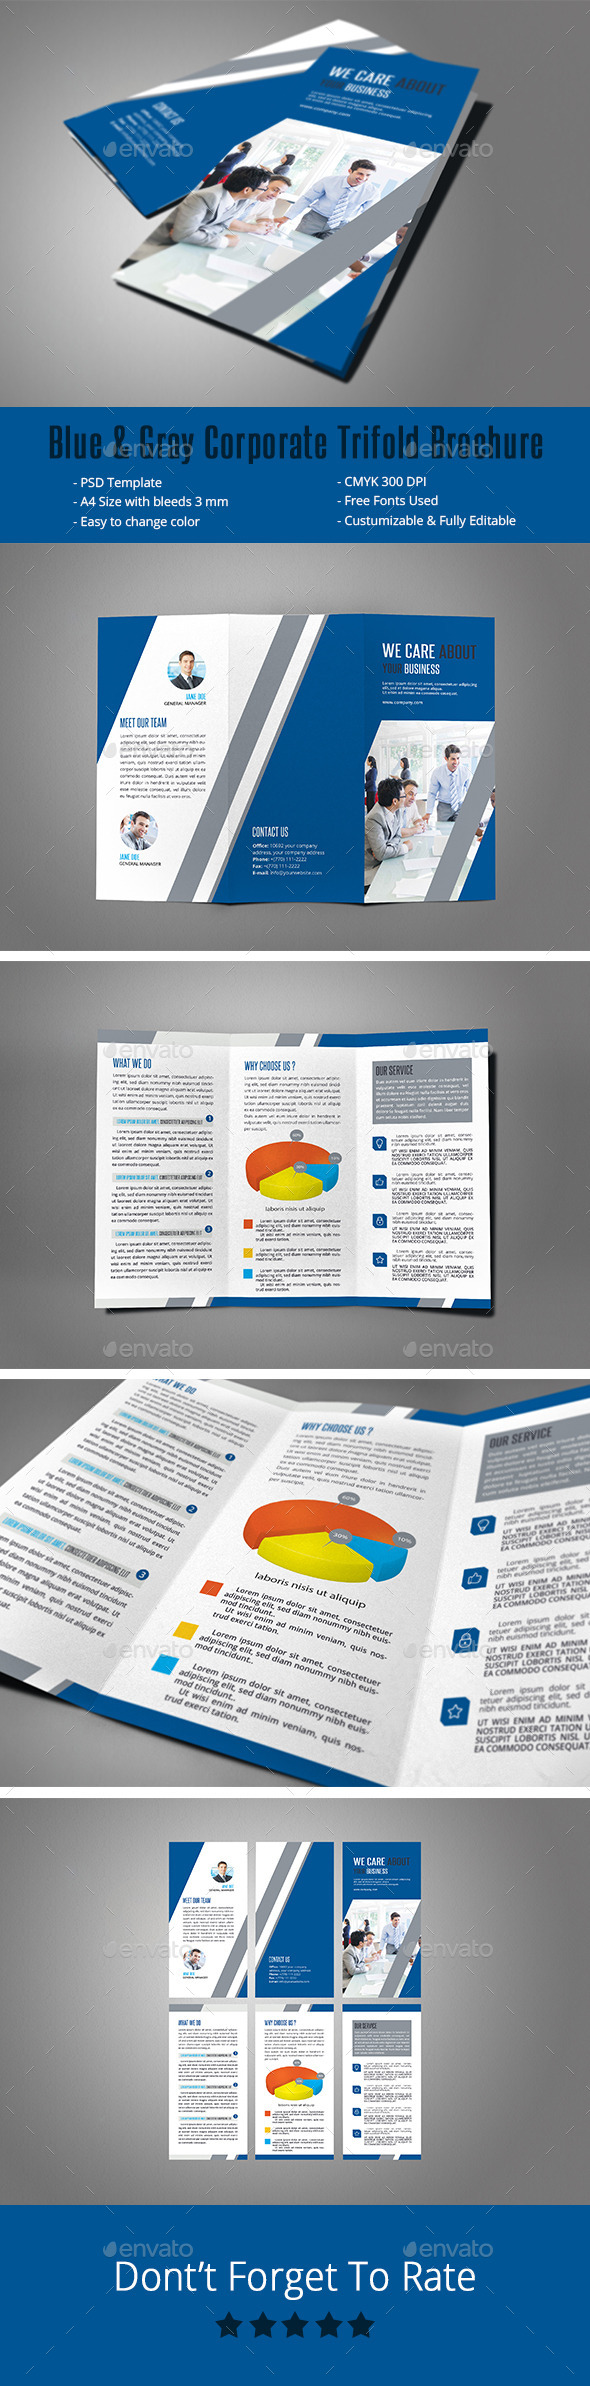 Blue & Gray Corporate Trifold Brochure - Corporate Brochures